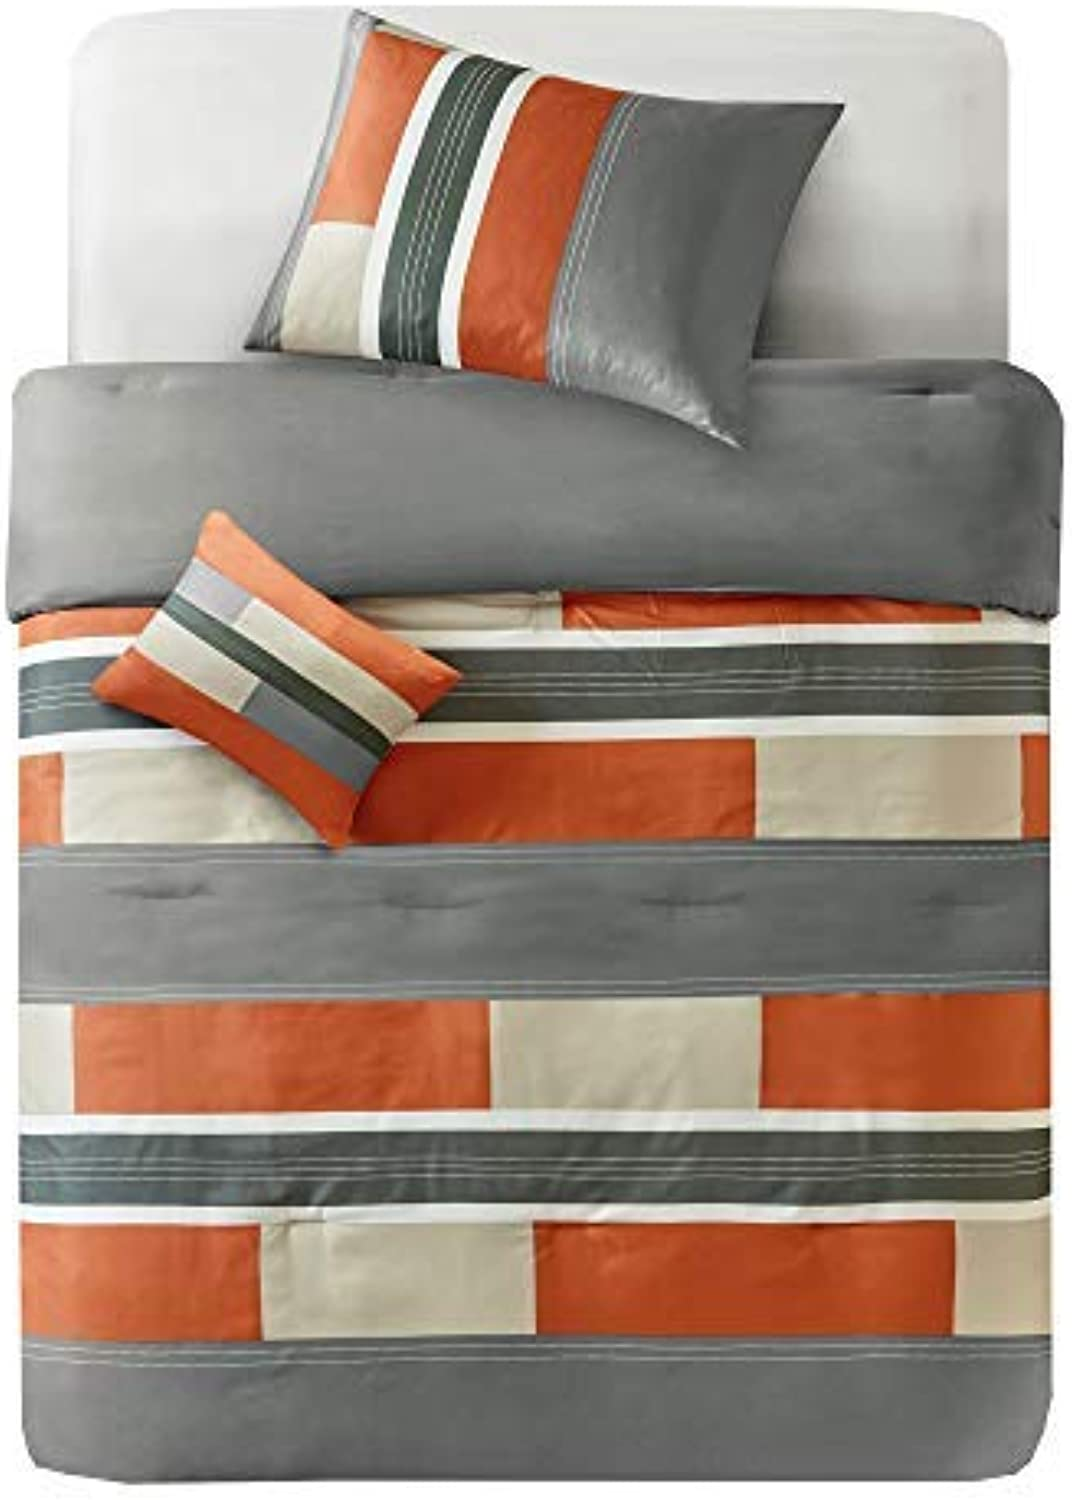 Comfort Spaces Pierre 3 Piece Comforter Set All Season Ultra Soft Hypoallergenic Microfiber Pipeline Stripe Boys Dormitory Bedding, Twin Twin XL, orange Grey